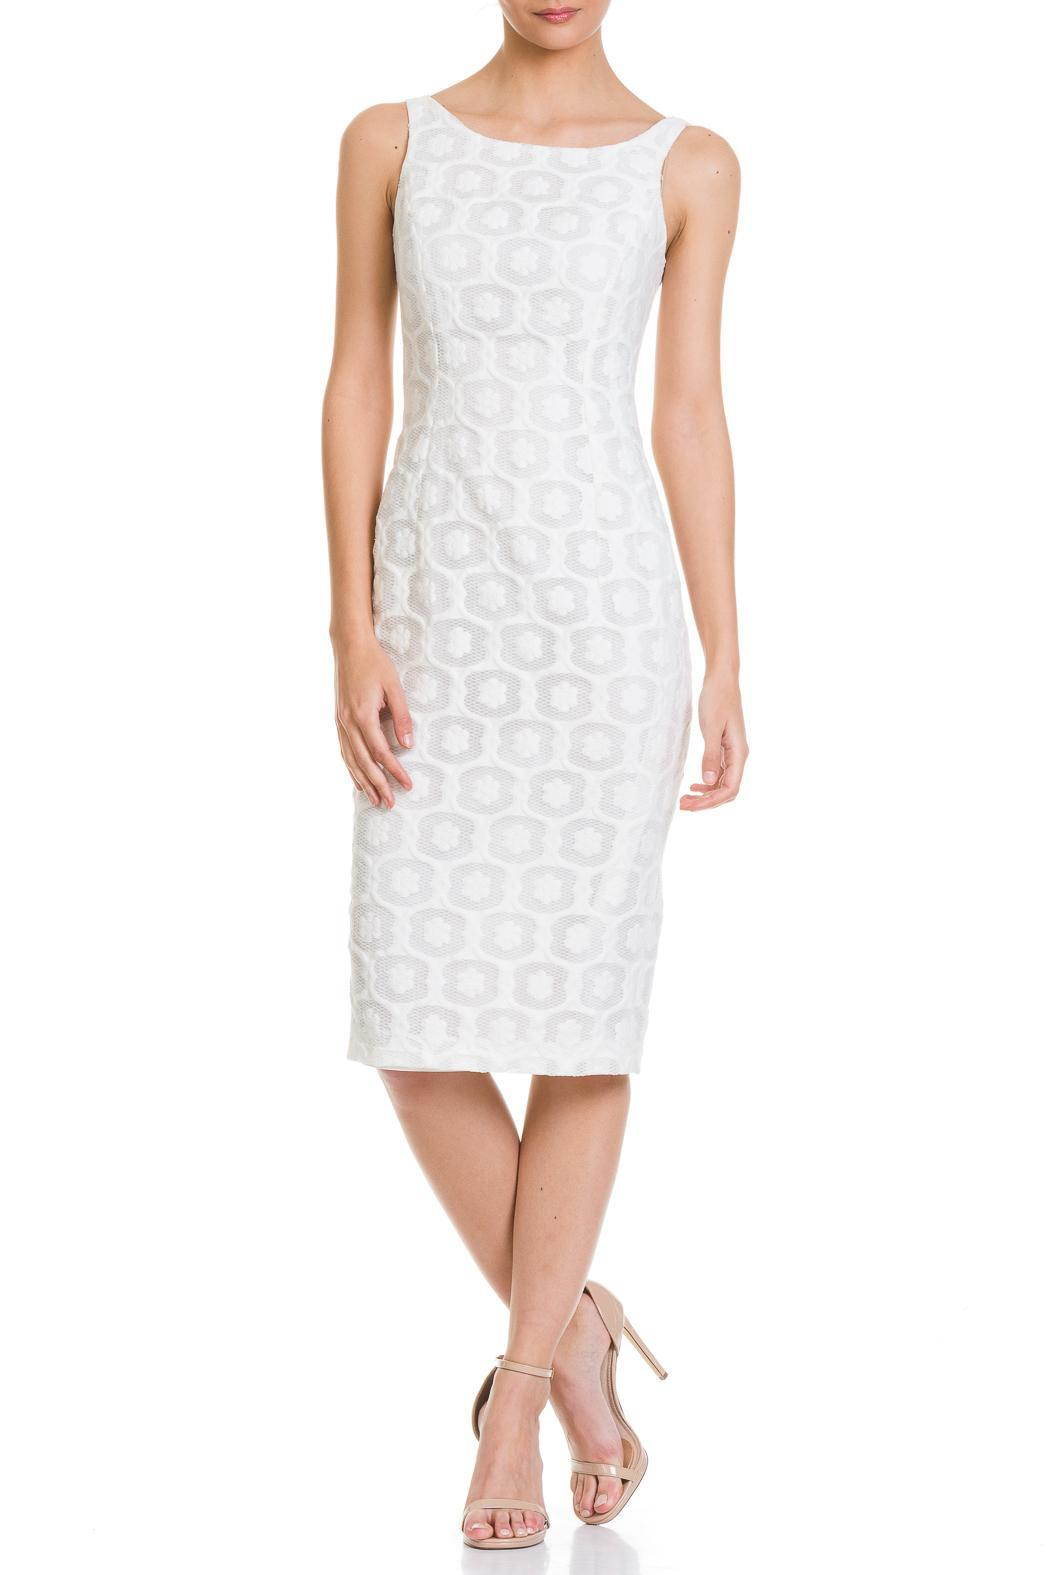 Shop our Collection of Women's Body-Con Dresses at shopnow-vjpmehag.cf for the Latest Designer Brands & Styles. FREE SHIPPING AVAILABLE!